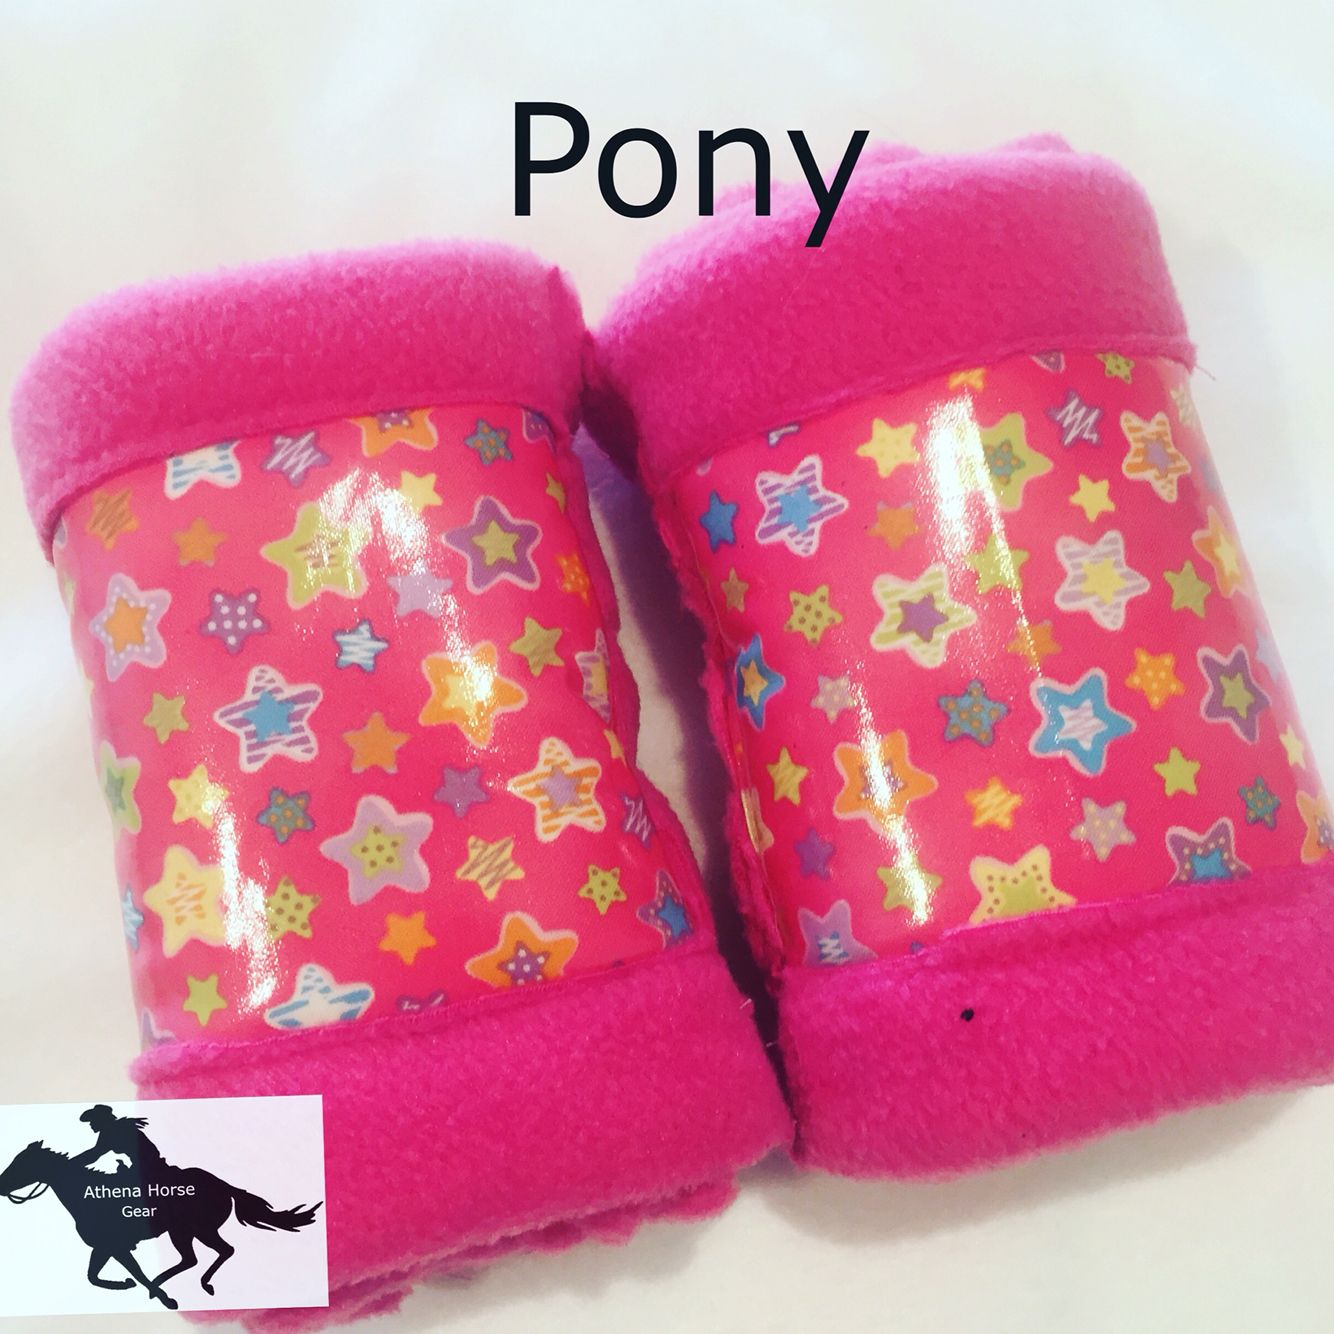 Cute pink pony set of boots   https://www.etsy.com/au/shop/AthenaHorseGear  https://www.facebook.com/Athena-Horse-Gear-1611924915787543/